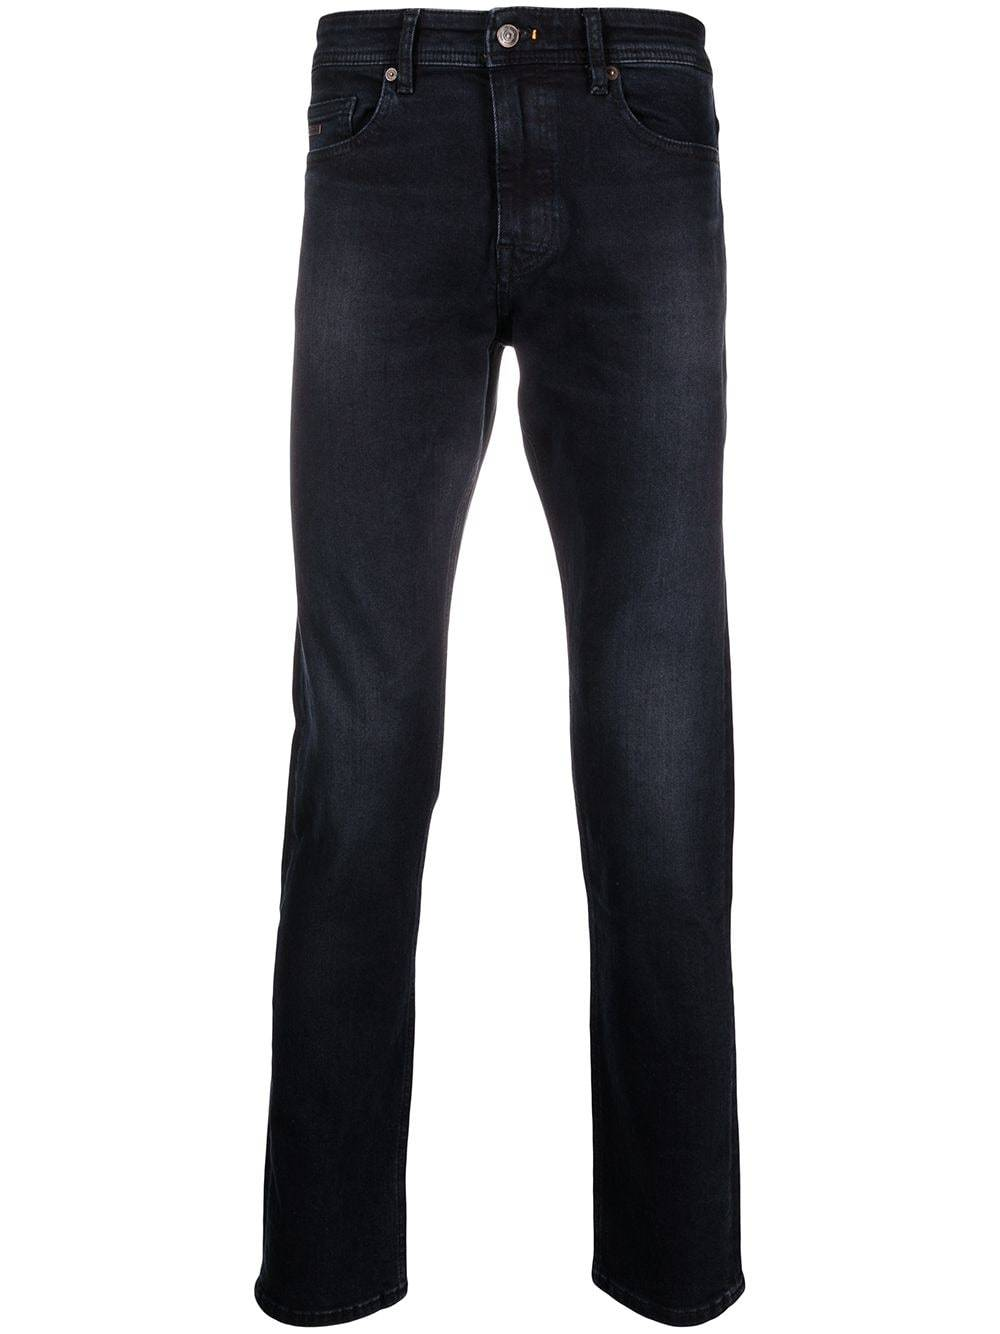 BOSS Delaware Jeans Dark Blue - Maison De Fashion